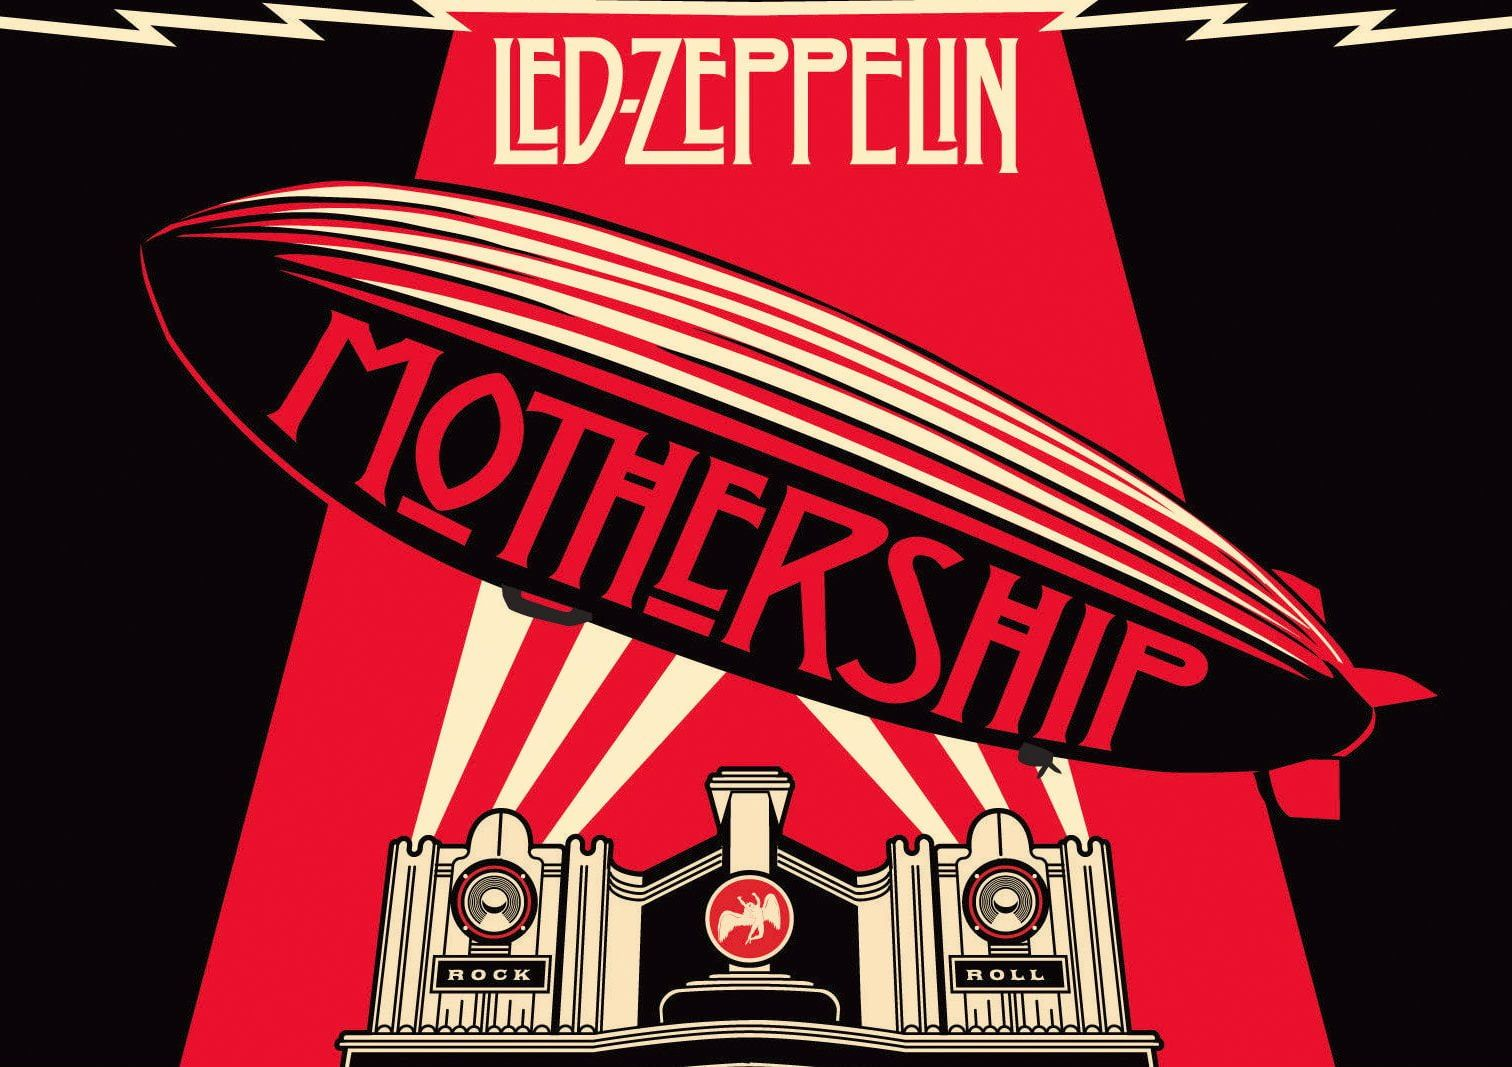 Led Zeppelin Mothership Album Cover Band Music Led Zeppelin Album Cover Hard Rock 720p Wallpaper Hdwallpape Music Album Art Rock Album Covers Music Covers